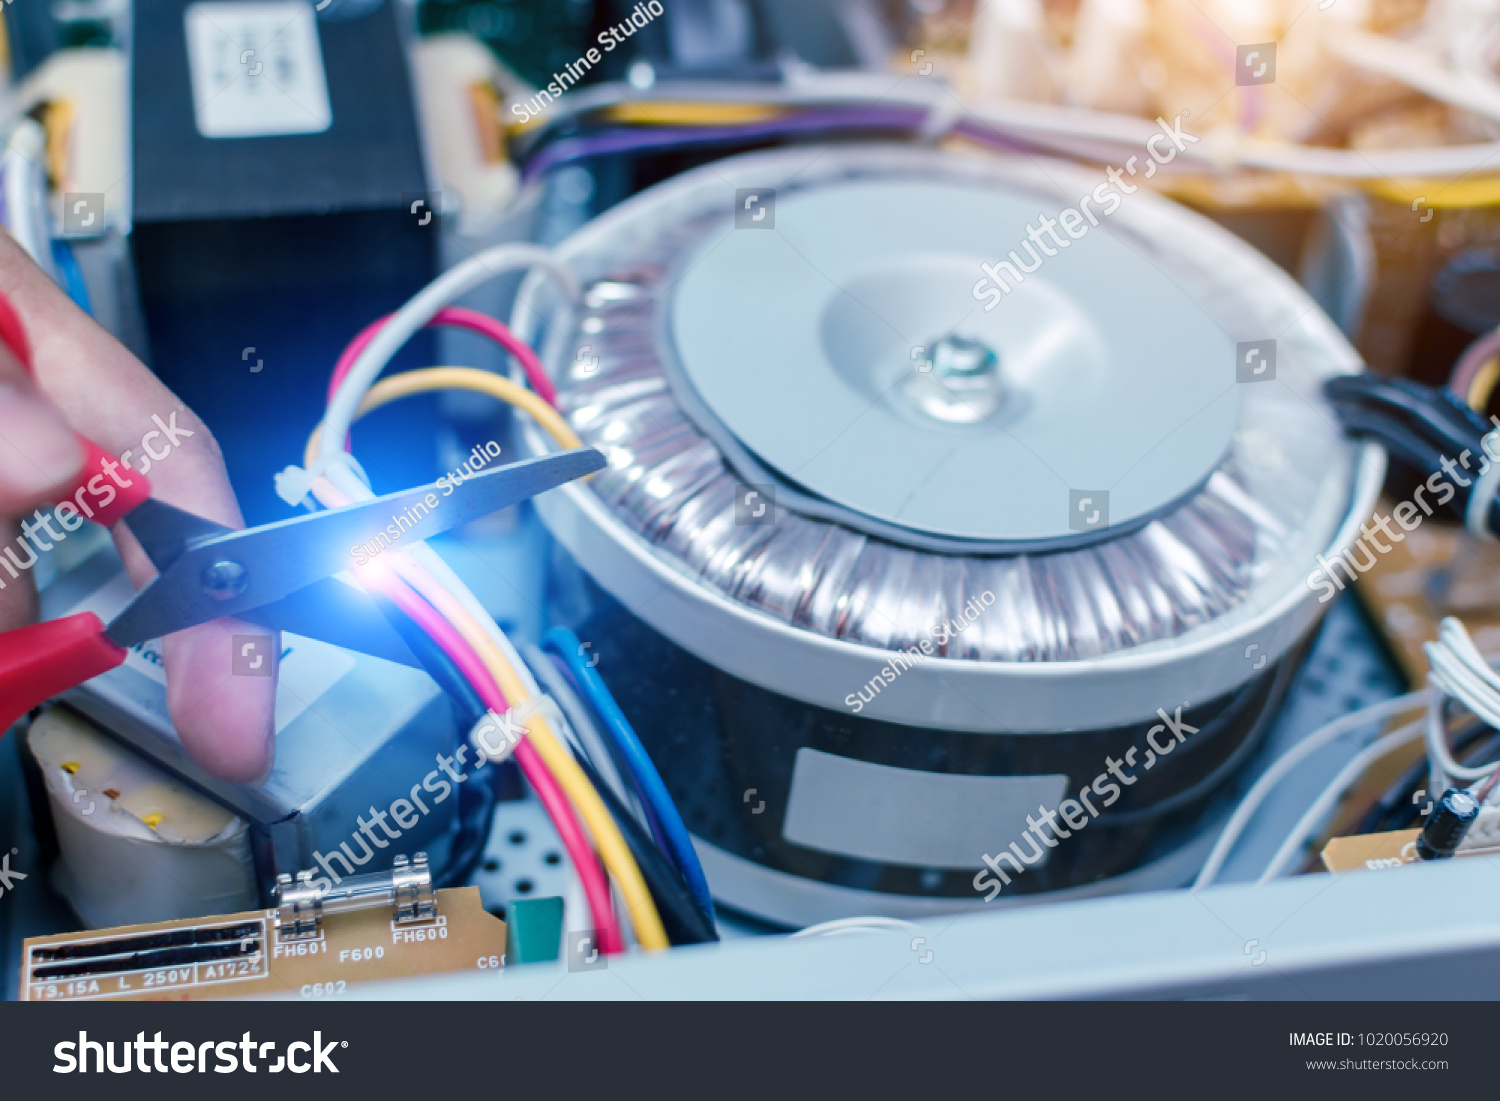 Electrician Cutting Power Lines Electronic Circuit Stock Photo Edit Boards Images Of Is Board At Officeconcept Repairing Technology